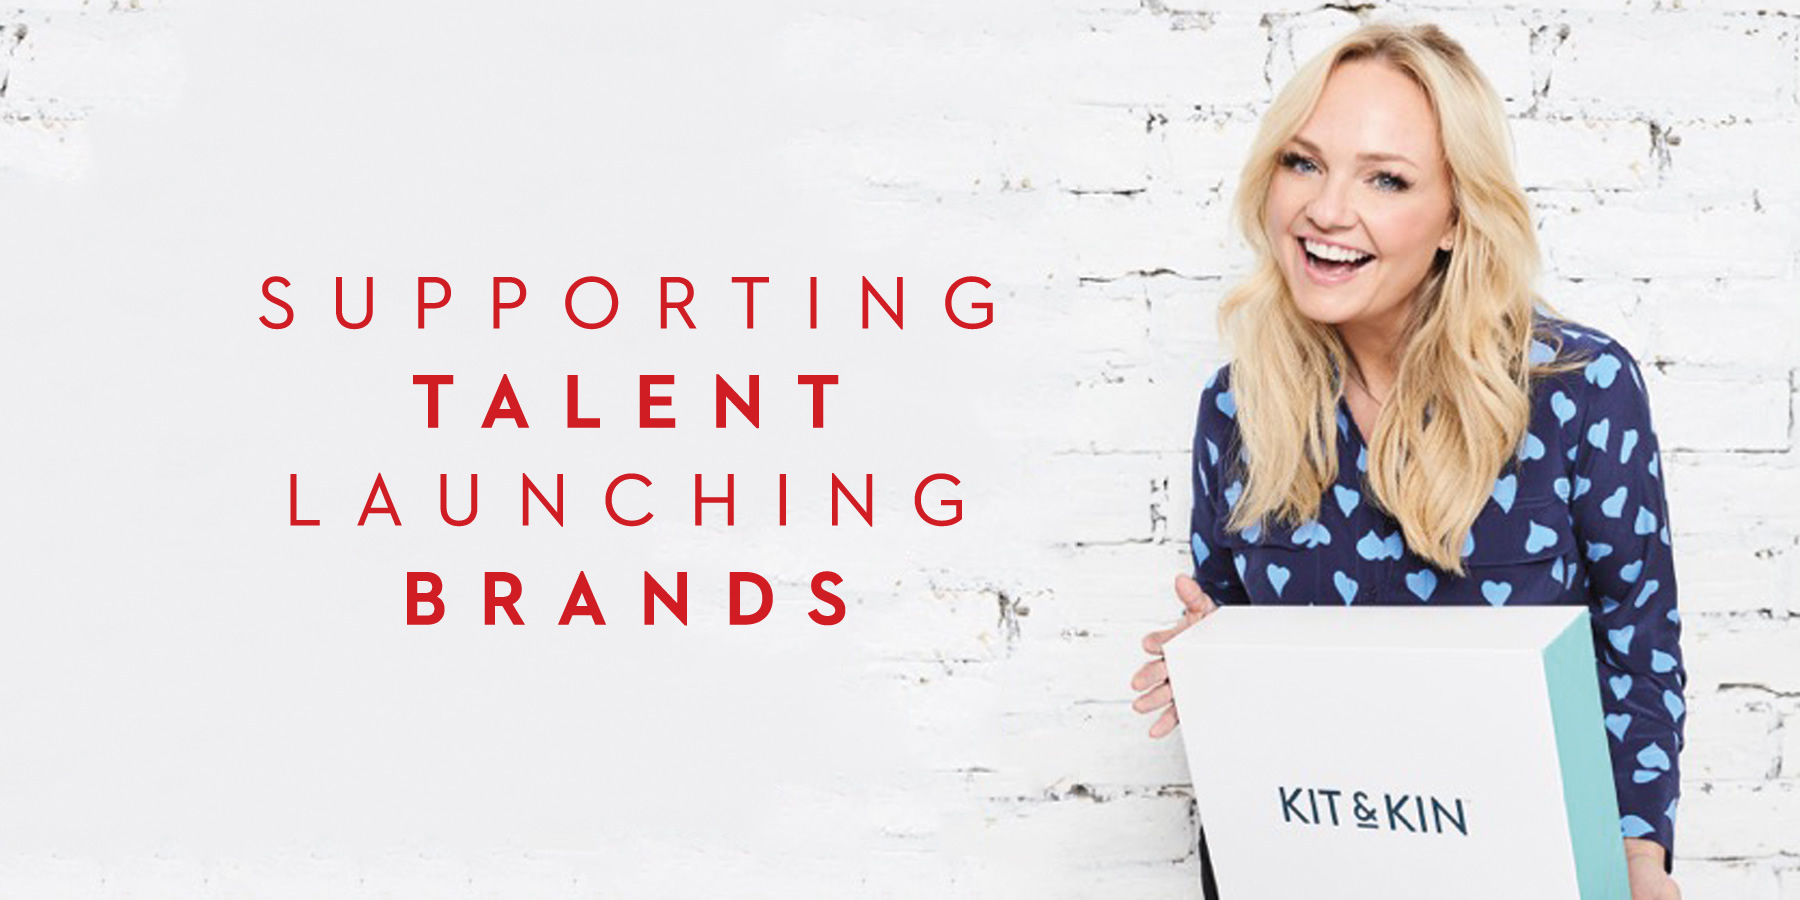 Supporting Talent Launching Brands